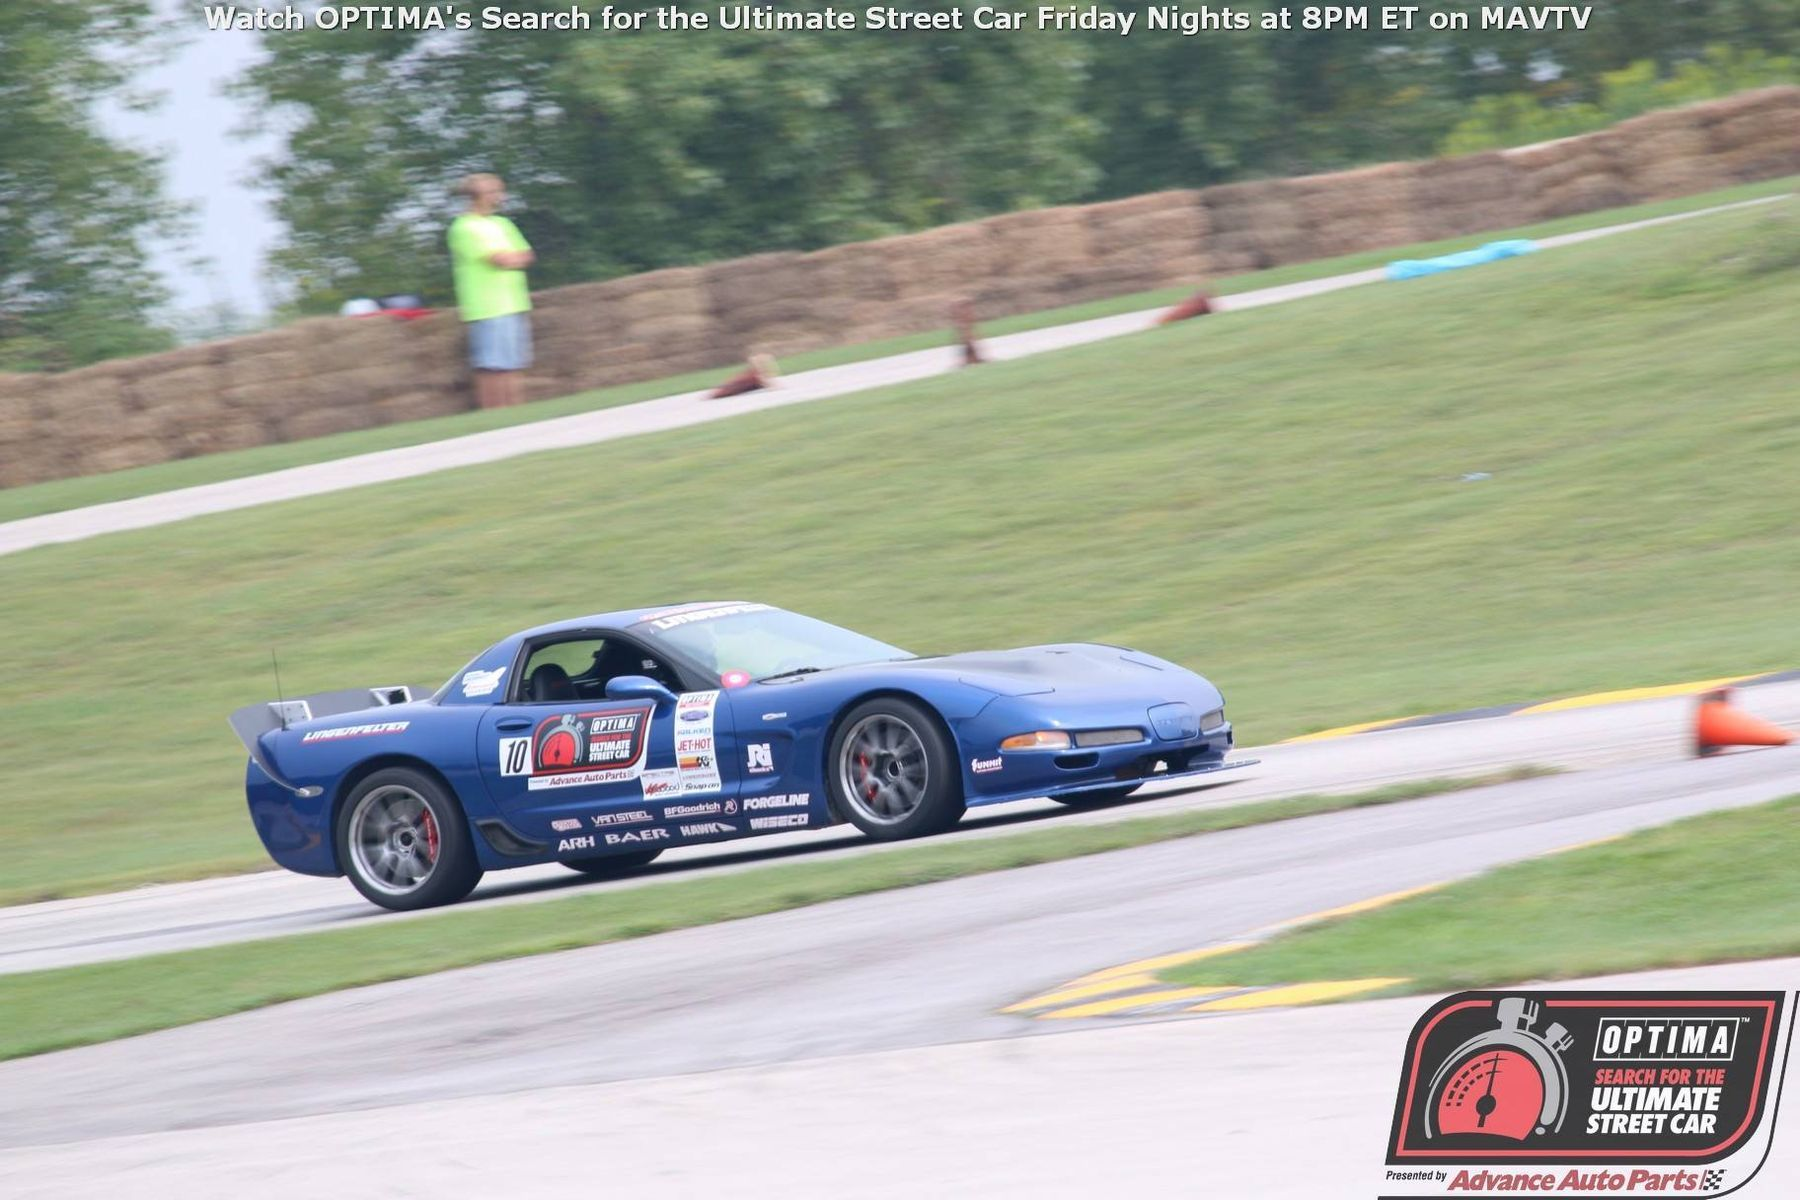 2003 Chevrolet Corvette Z06 | Corvette Z06 on Forgeline GS1R Wheels